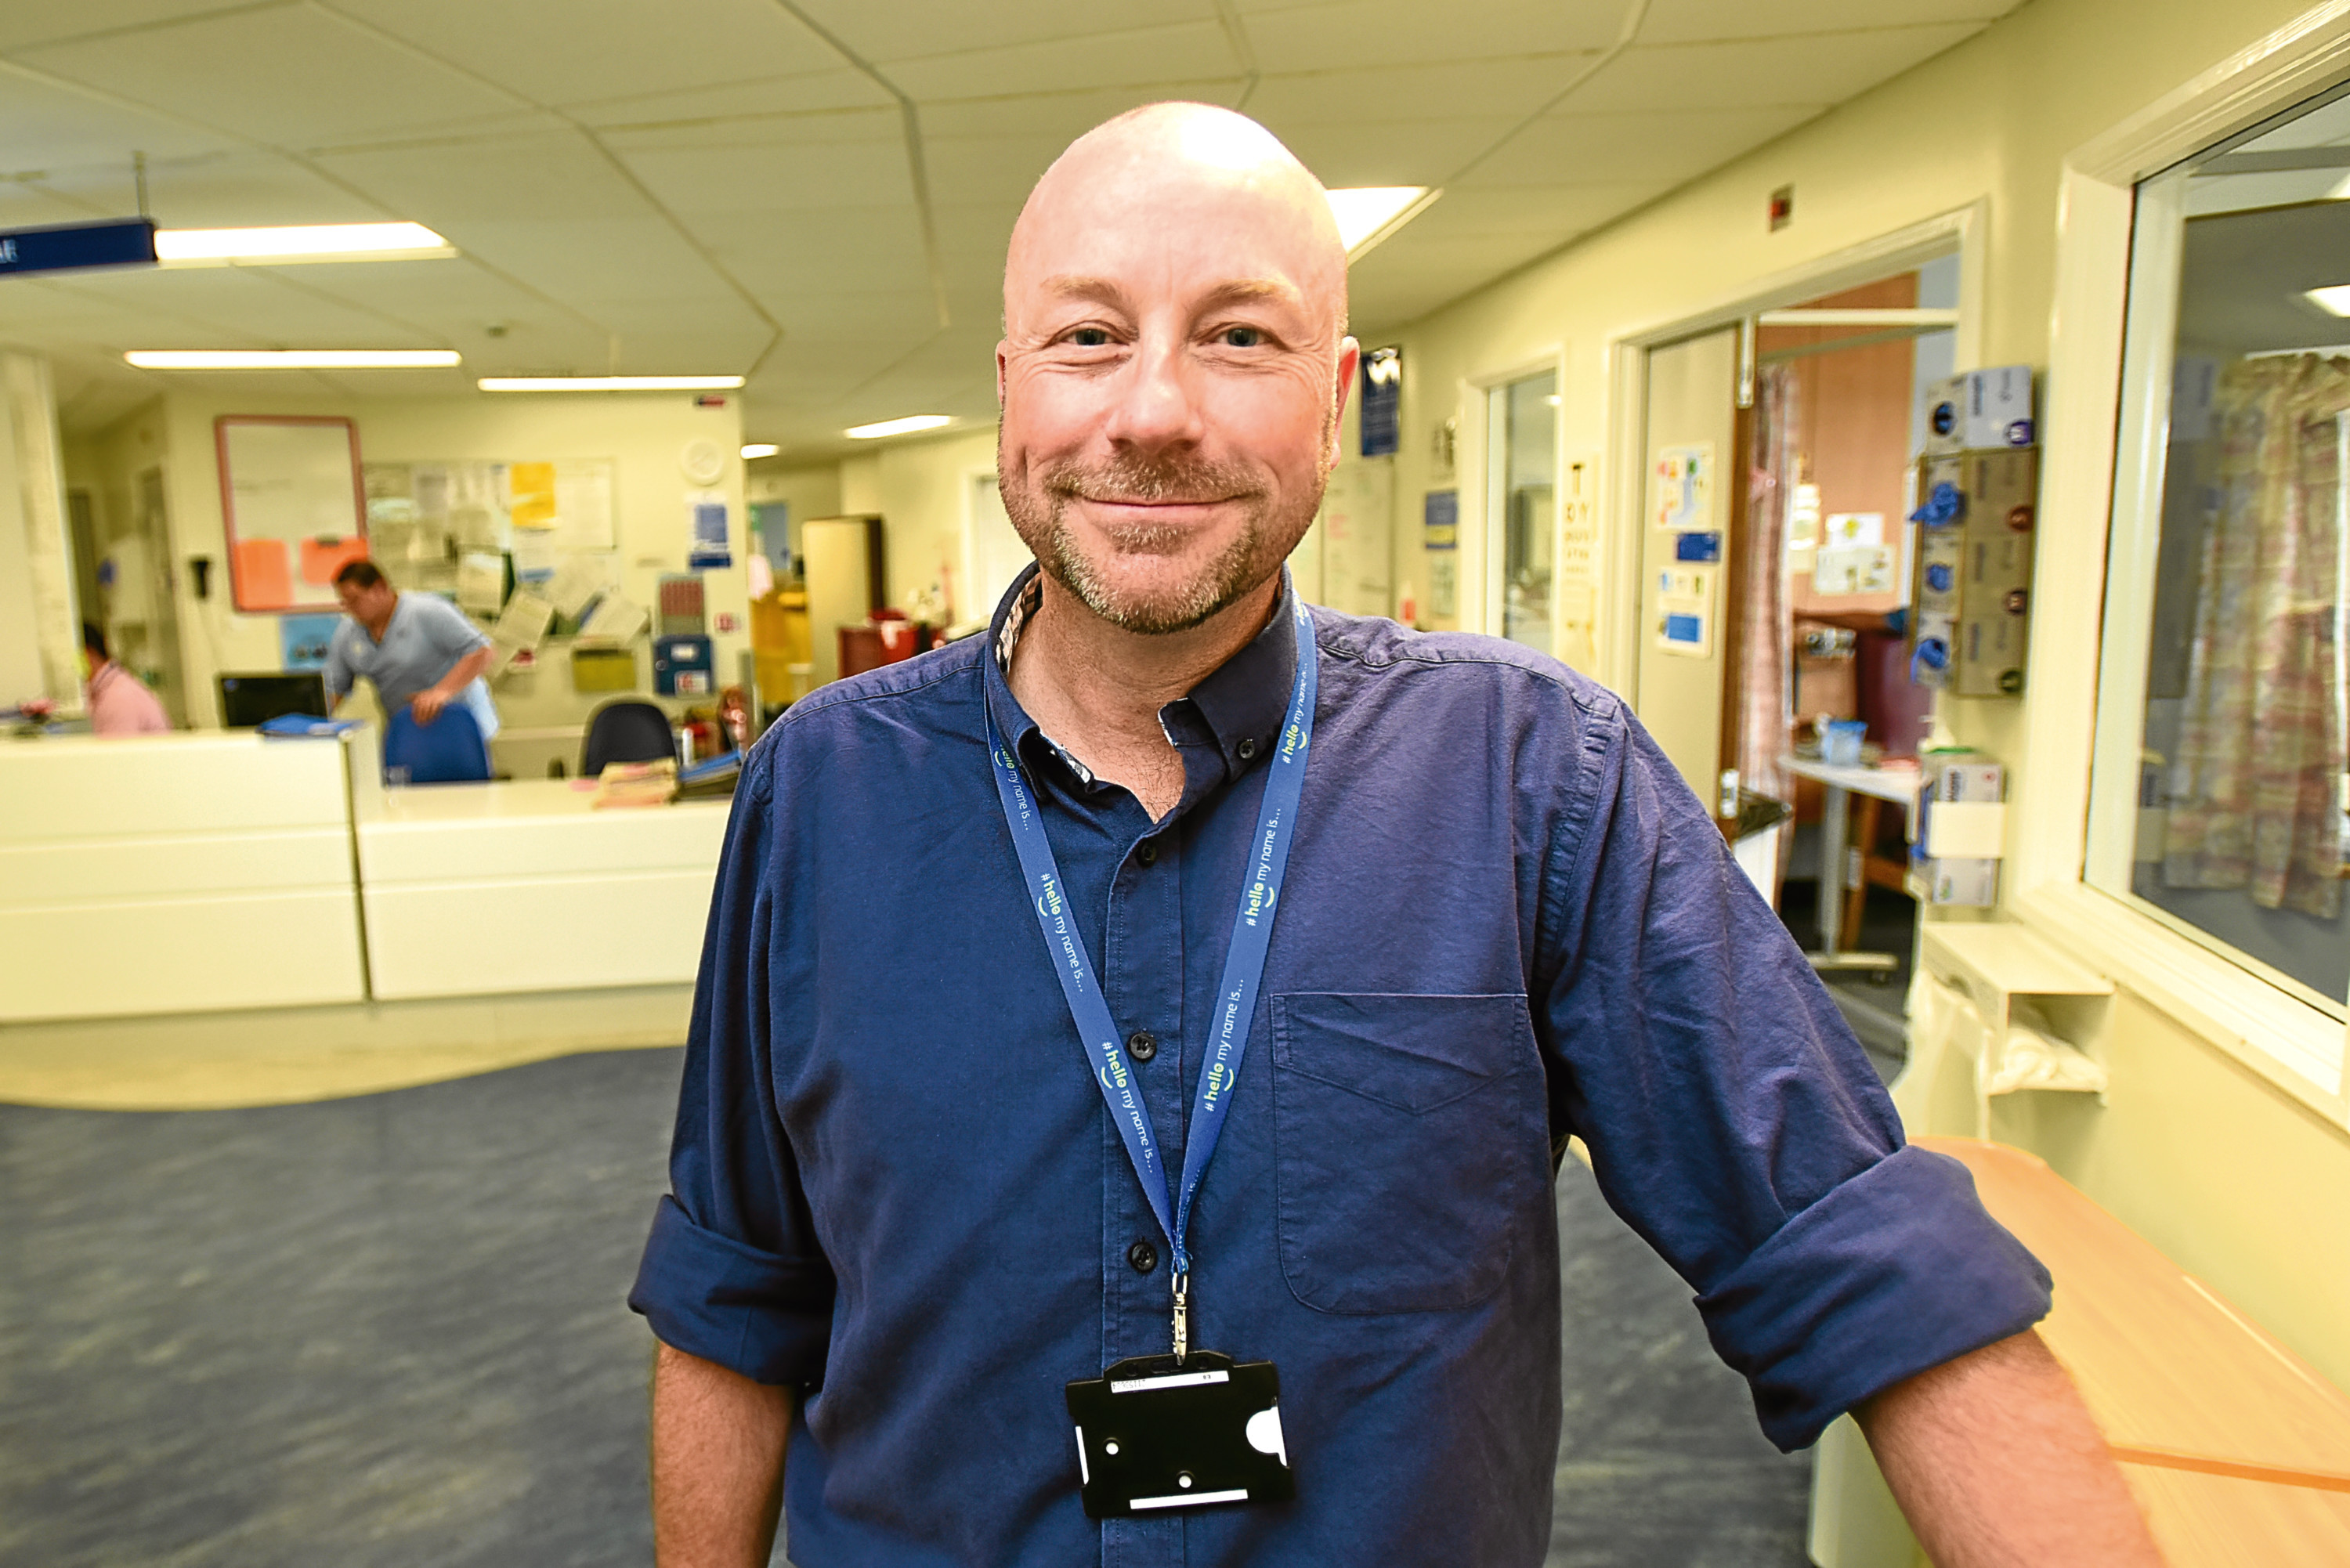 George Doherty, director of workforce at NHS Tayside